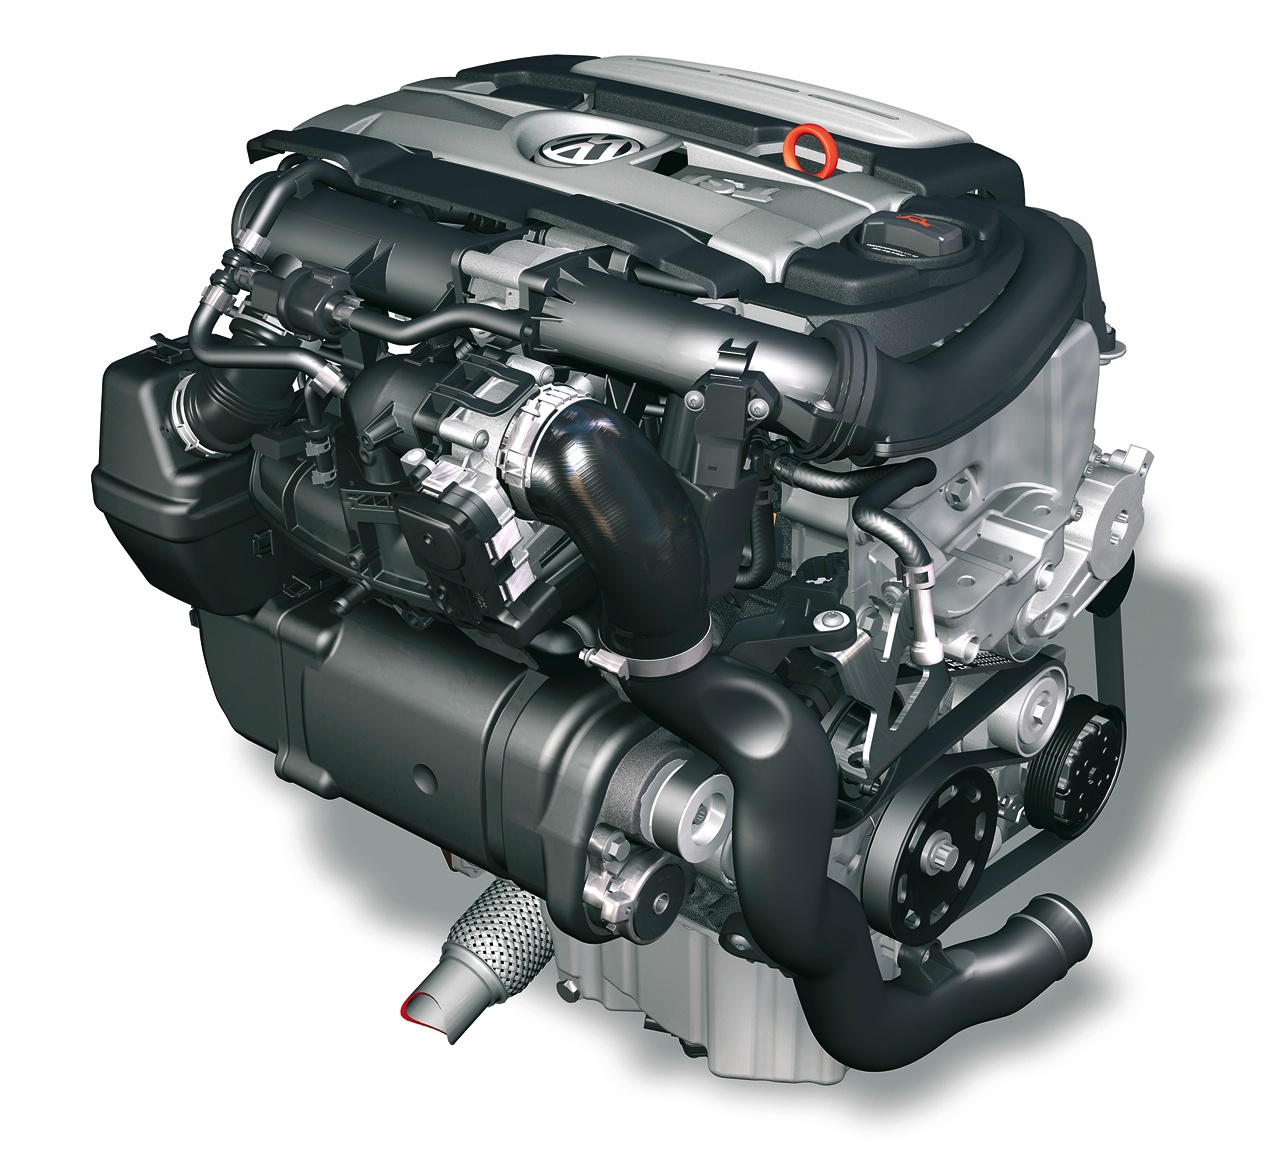 Volkswagen Tsi Engines Explained Autoevolution 2013 Passat Engine Diagram